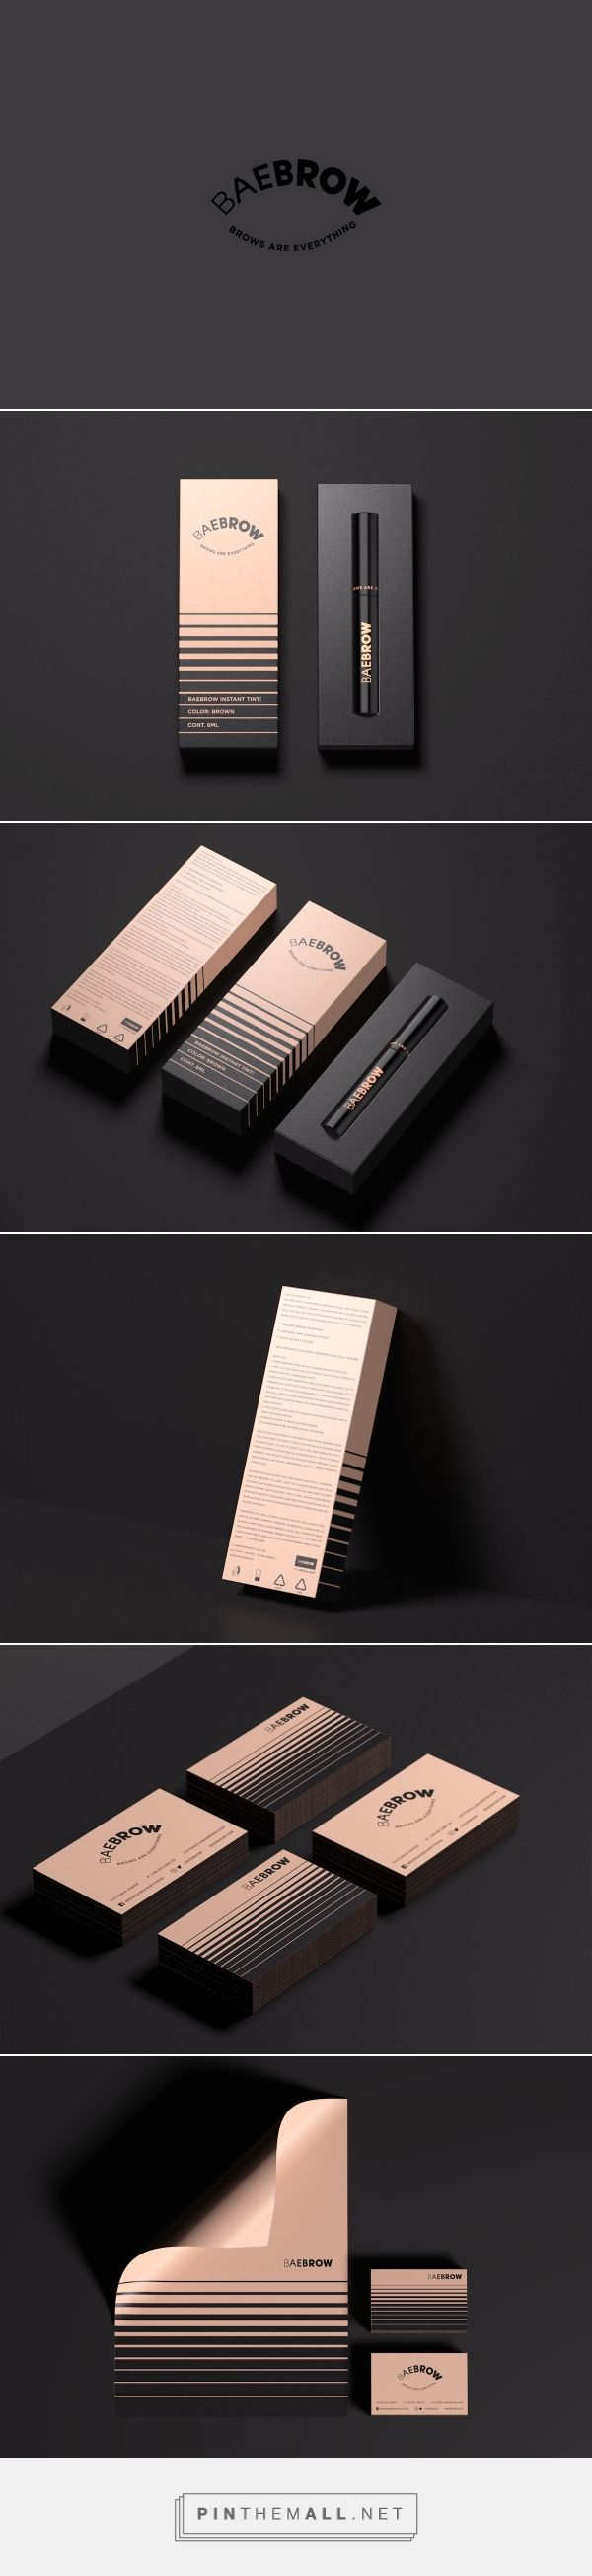 BAEBROW Cosmetic Branding and Packaging by Robinsson Cravents | Fivestar Branding Agency – Design and Branding Agency & Curated Inspiration Gallery